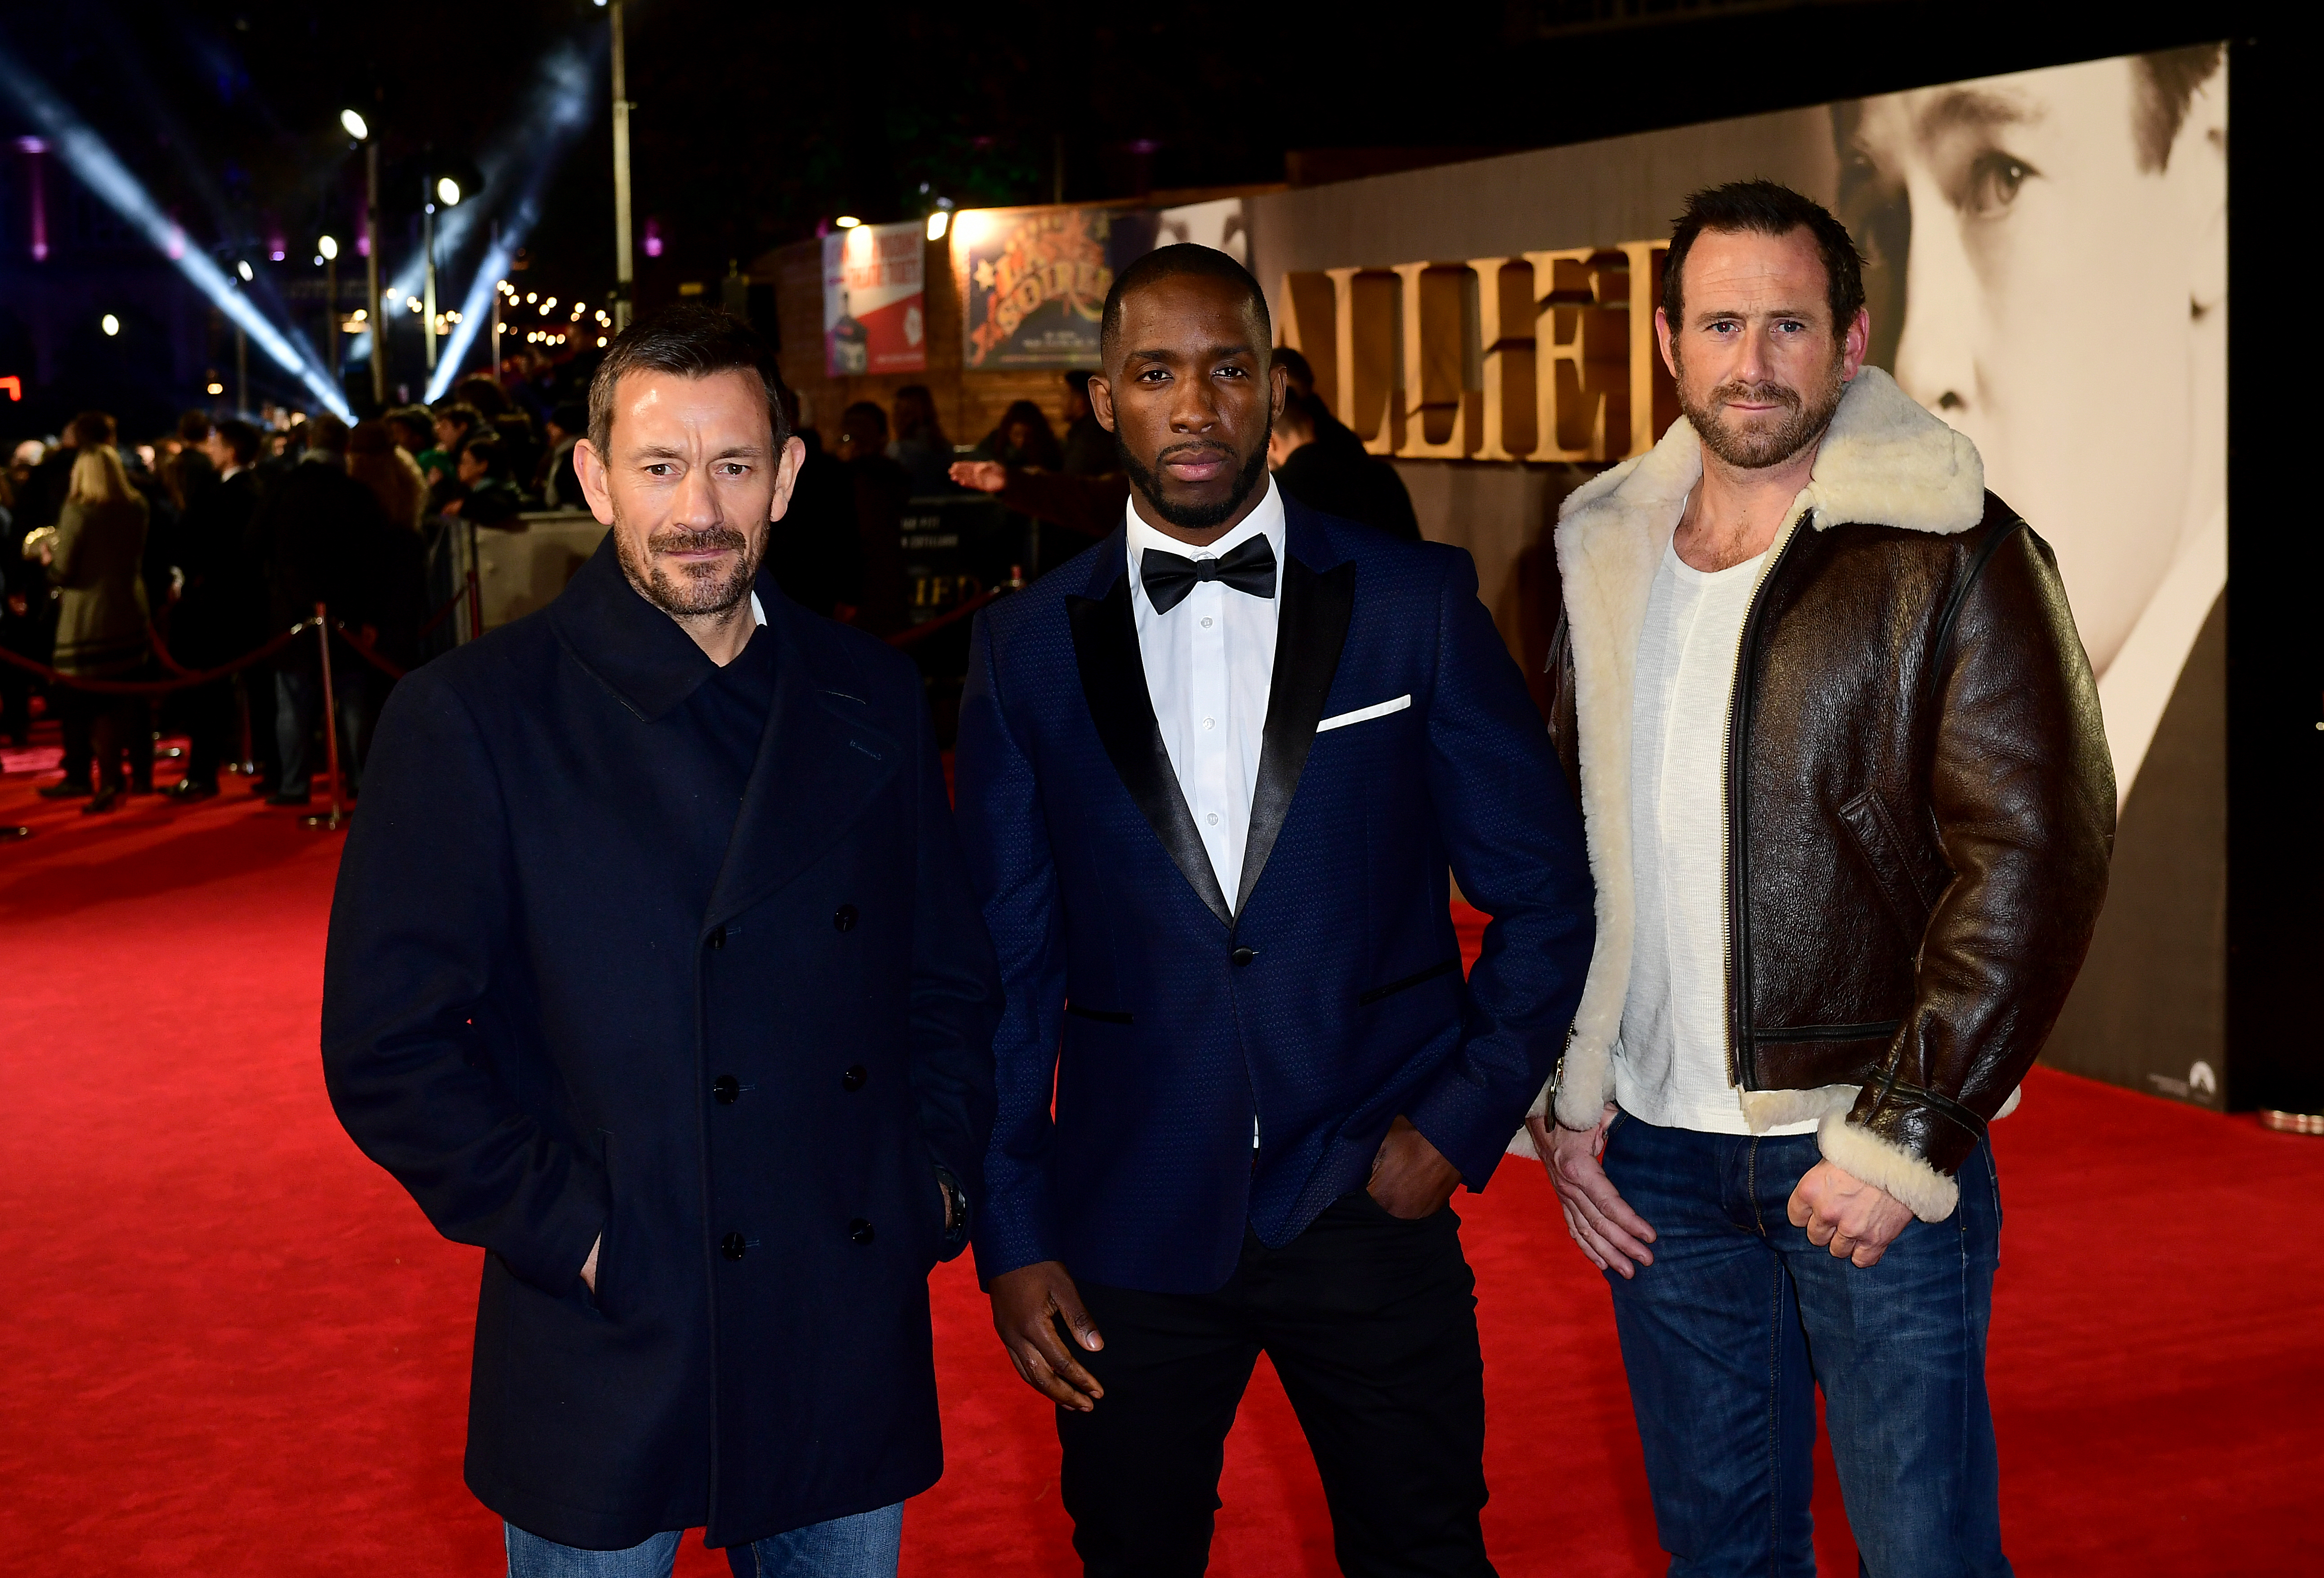 Ollie Ollerton, Moses Ican and Jason Fox at the Allied premier in 2016 (Ian West/PA)